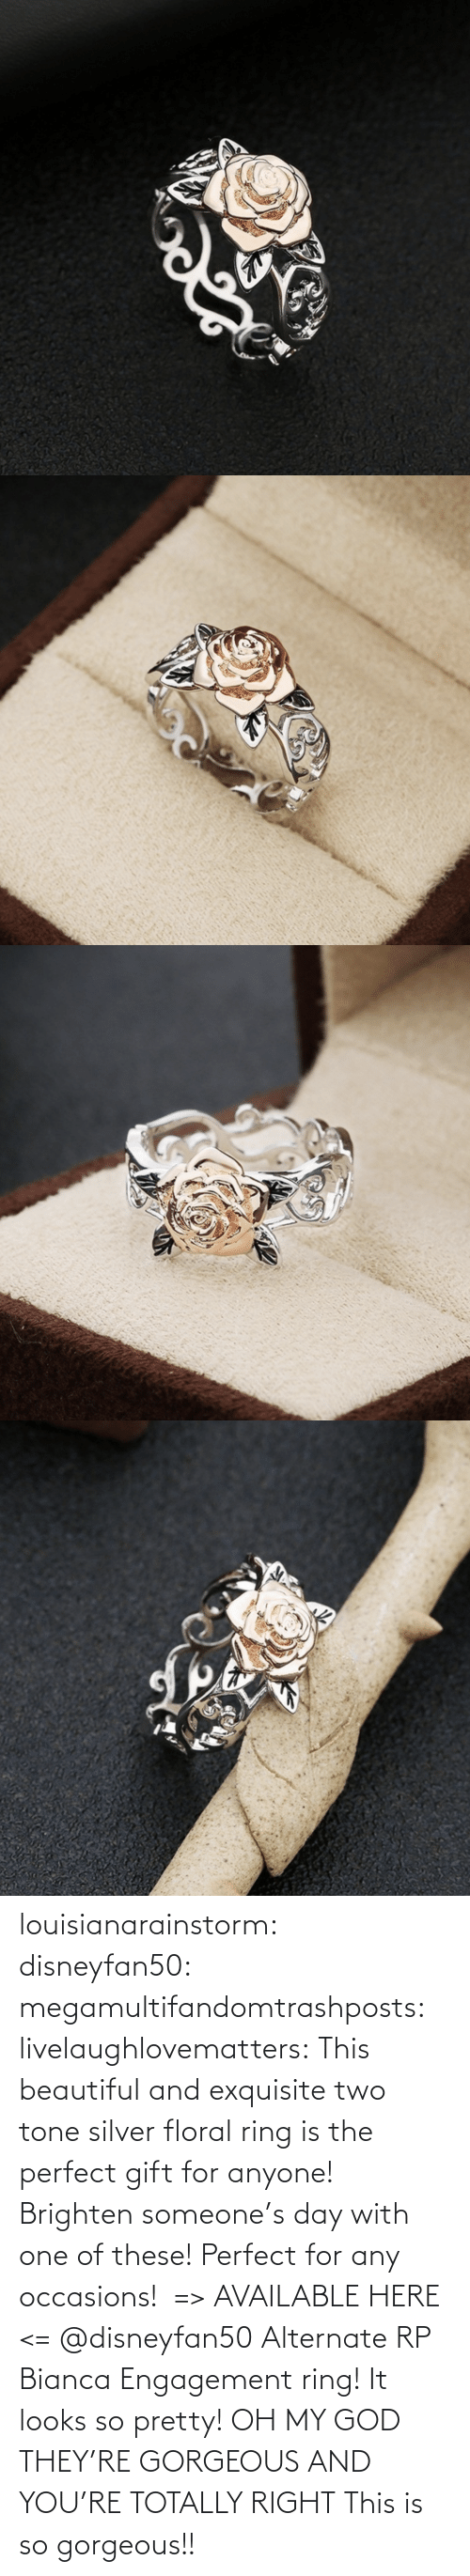 So Pretty: louisianarainstorm: disneyfan50:  megamultifandomtrashposts:  livelaughlovematters:  This beautiful and exquisite two tone silver floral ring is the perfect gift for anyone! Brighten someone's day with one of these! Perfect for any occasions!  => AVAILABLE HERE <=    @disneyfan50 Alternate RP Bianca Engagement ring! It looks so pretty!  OH MY GOD THEY'RE GORGEOUS AND YOU'RE TOTALLY RIGHT    This is so gorgeous!!